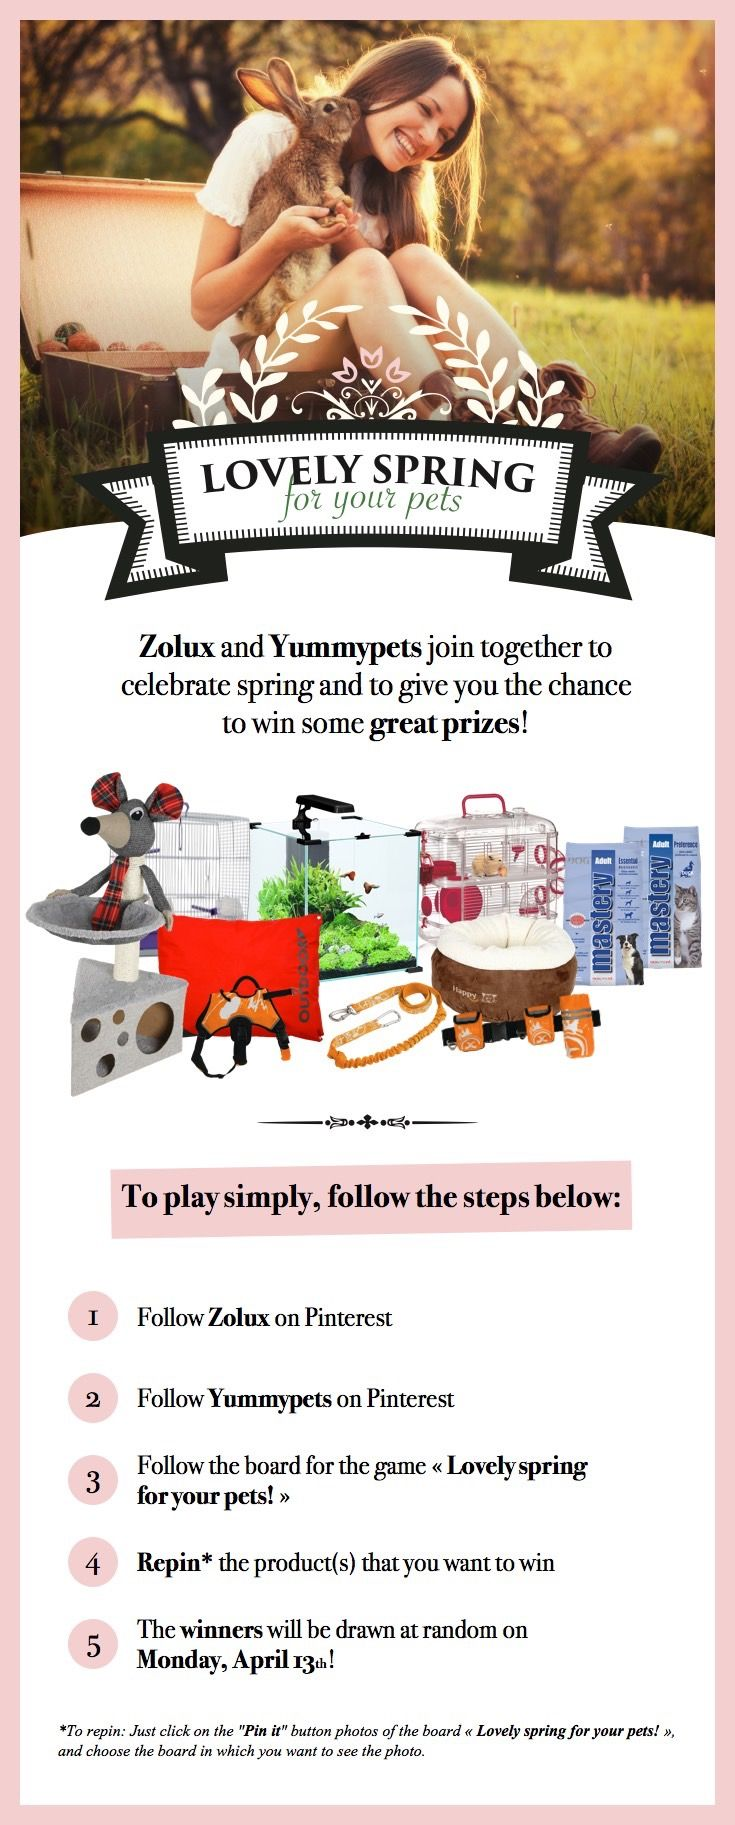 "Zolux joins Yummypets and offers you many prizes to win! For a chance to win, it's very simple, follow the steps below: Follow Zolux on Pinterest: http://ymp.io/u/Dlm - Follow Yummypets on Pinterest: http://ymp.io/u/tvb -Follow the board ""Lovely spring for your pets !"": http://ymp.io/u/sei - Repin the products that you would like to win - Results on April 13th 2015. GOOD LUCK! #game #pets #cat #dog #bird #fish #rodent #bunny #puppy #kitty #kitten #gift #pinterest #yummypets #zolux #petsupply"